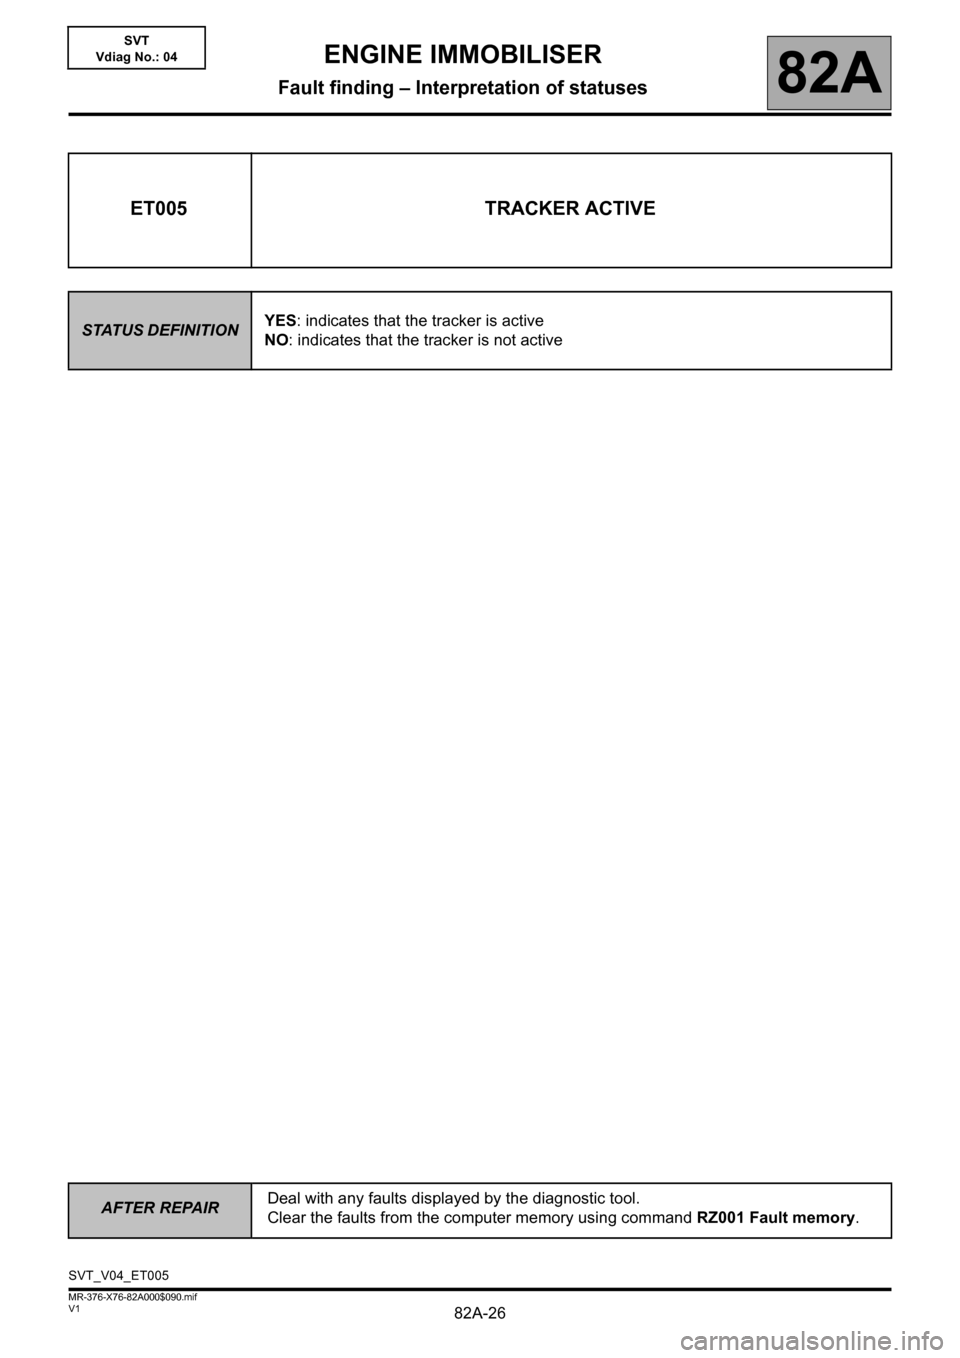 RENAULT KANGOO 2013 X61 / 2.G Engine Immobiliser Owners Manual 82A-26 AFTER REPAIRDeal with any faults displayed by the diagnostic tool. Clear the faults from the computer memory using command RZ001 Fault memory. V1 MR-376-X76-82A000$090.mif ENGINE IMMOBILISER Fa